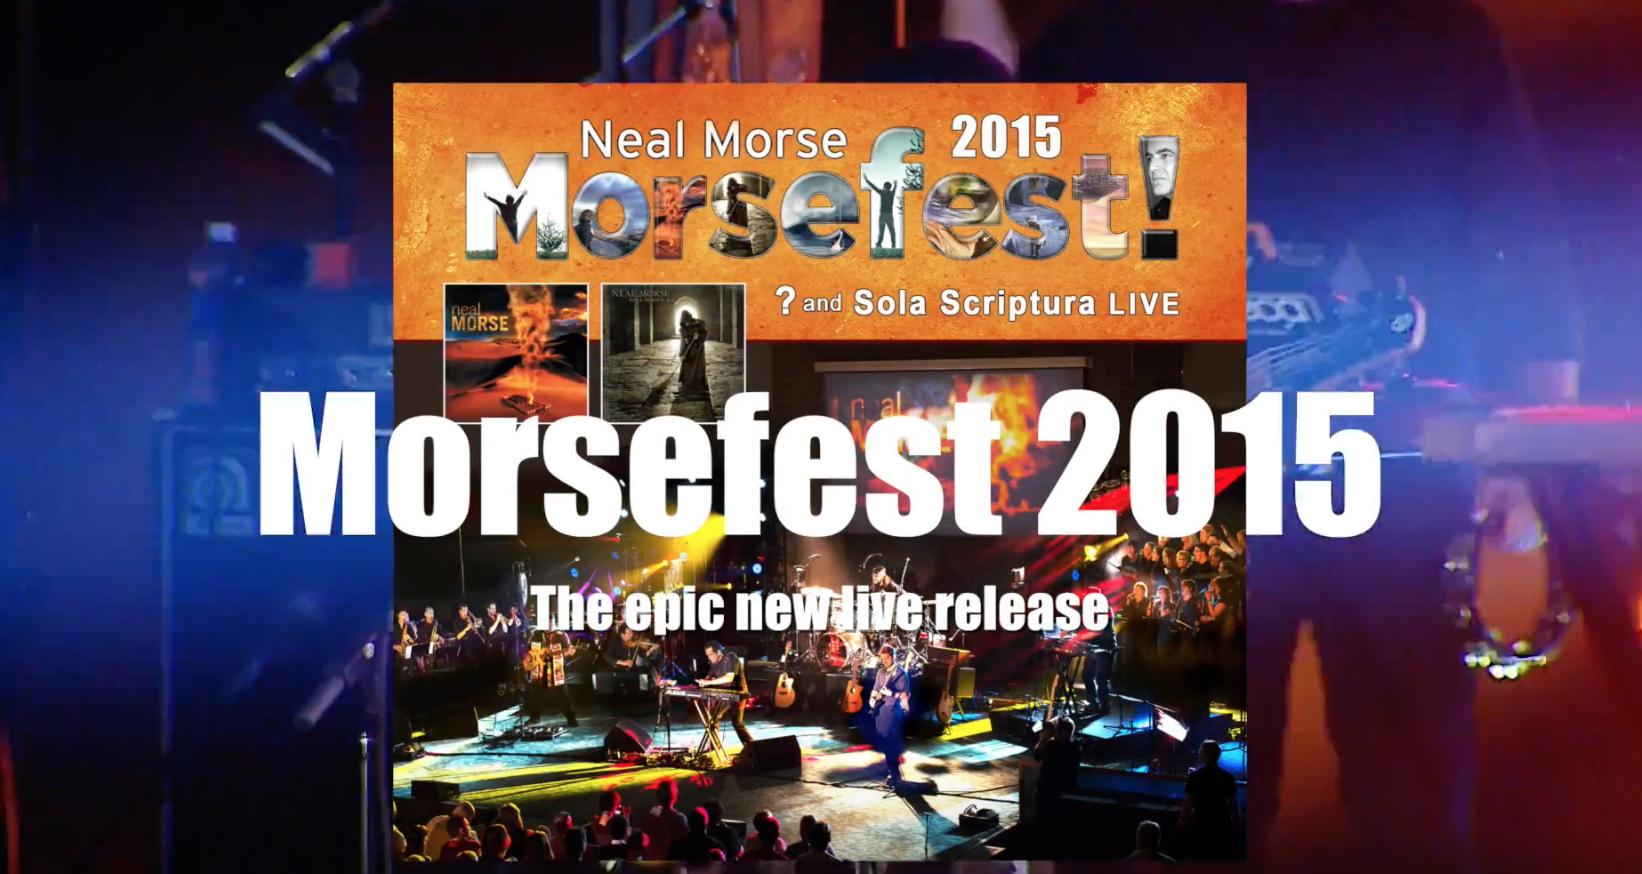 Morsefest 2015 to be released on CD/DVD and Blu-Ray